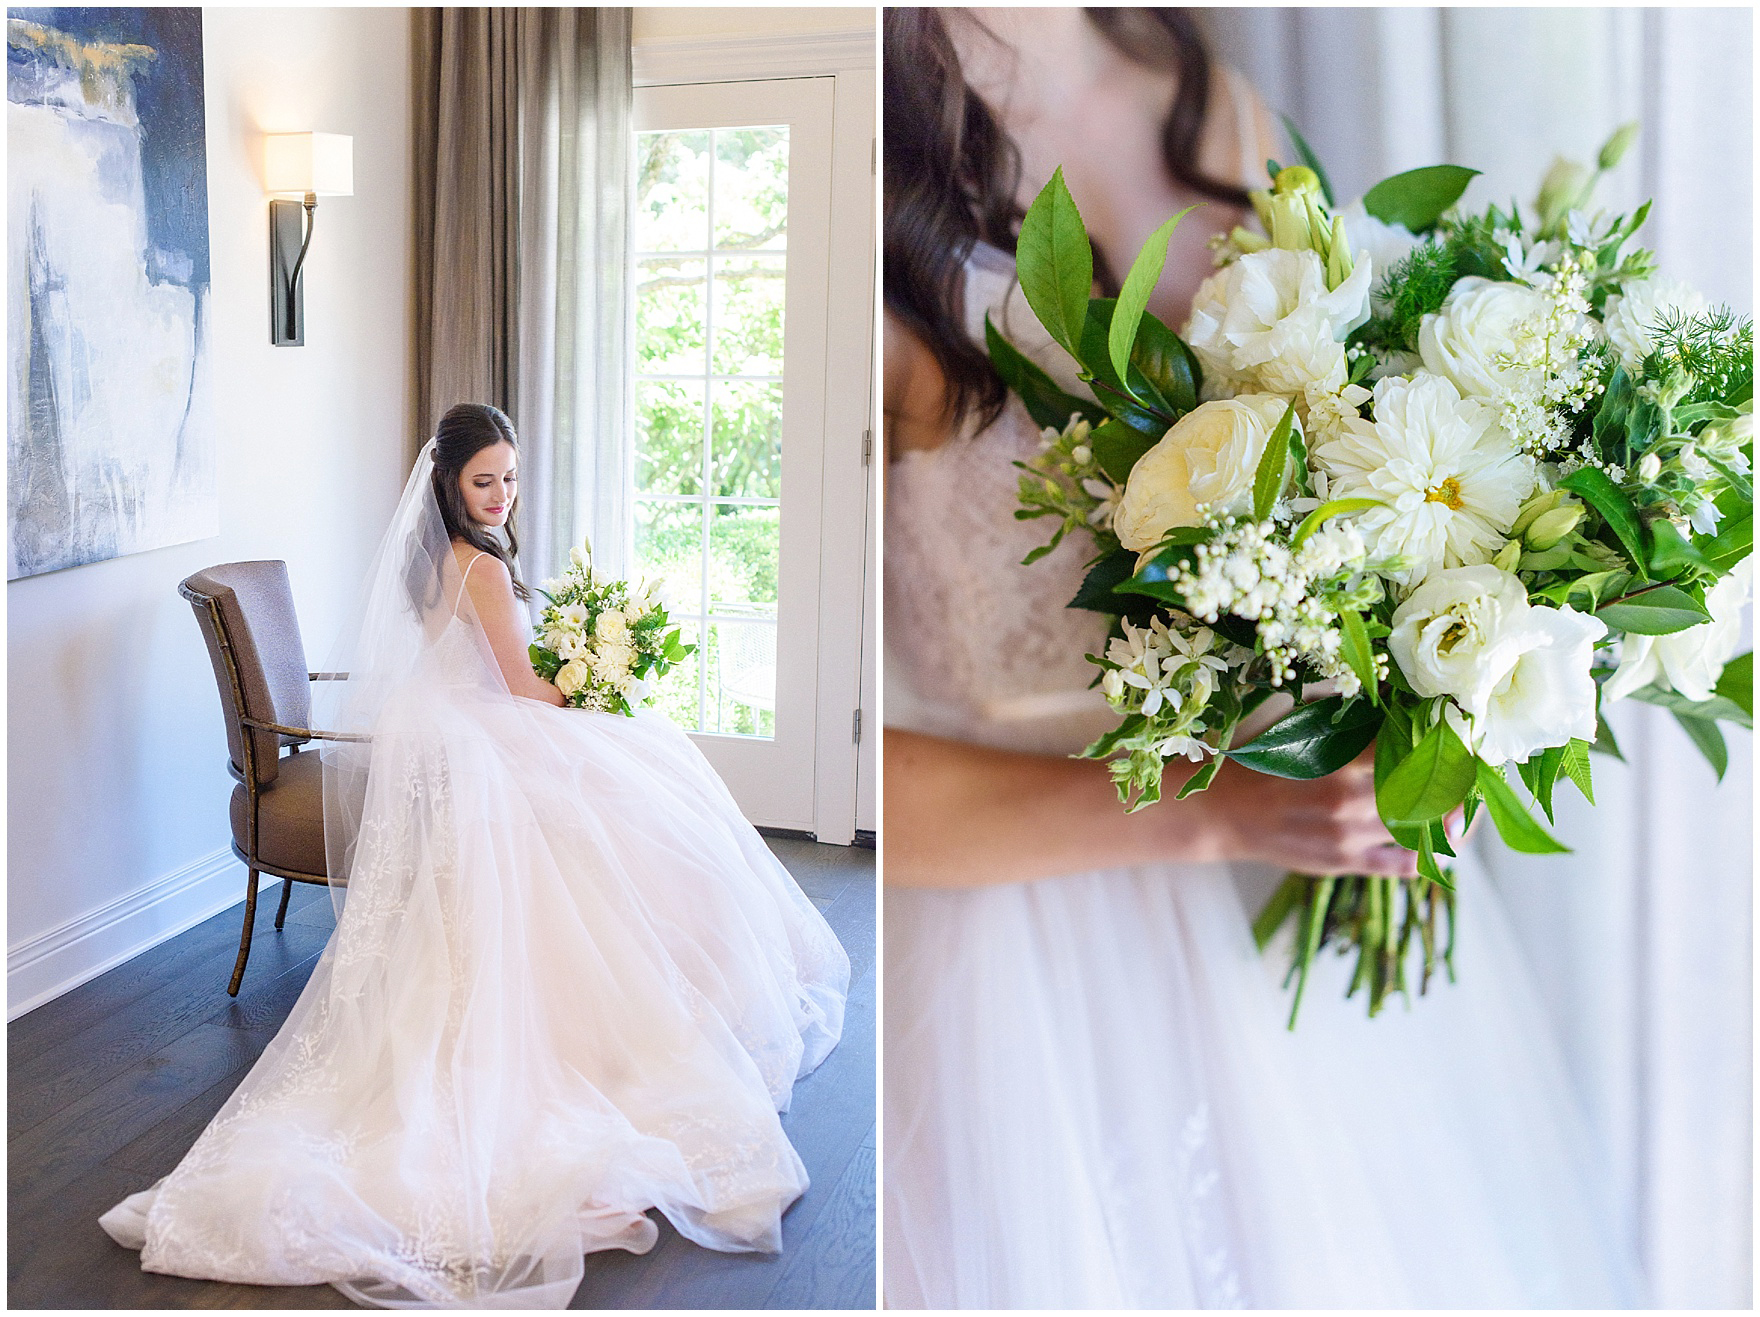 Bridal portraits featuring a bouquet by Flowers for Dreams for a Butterfield Country Club wedding.